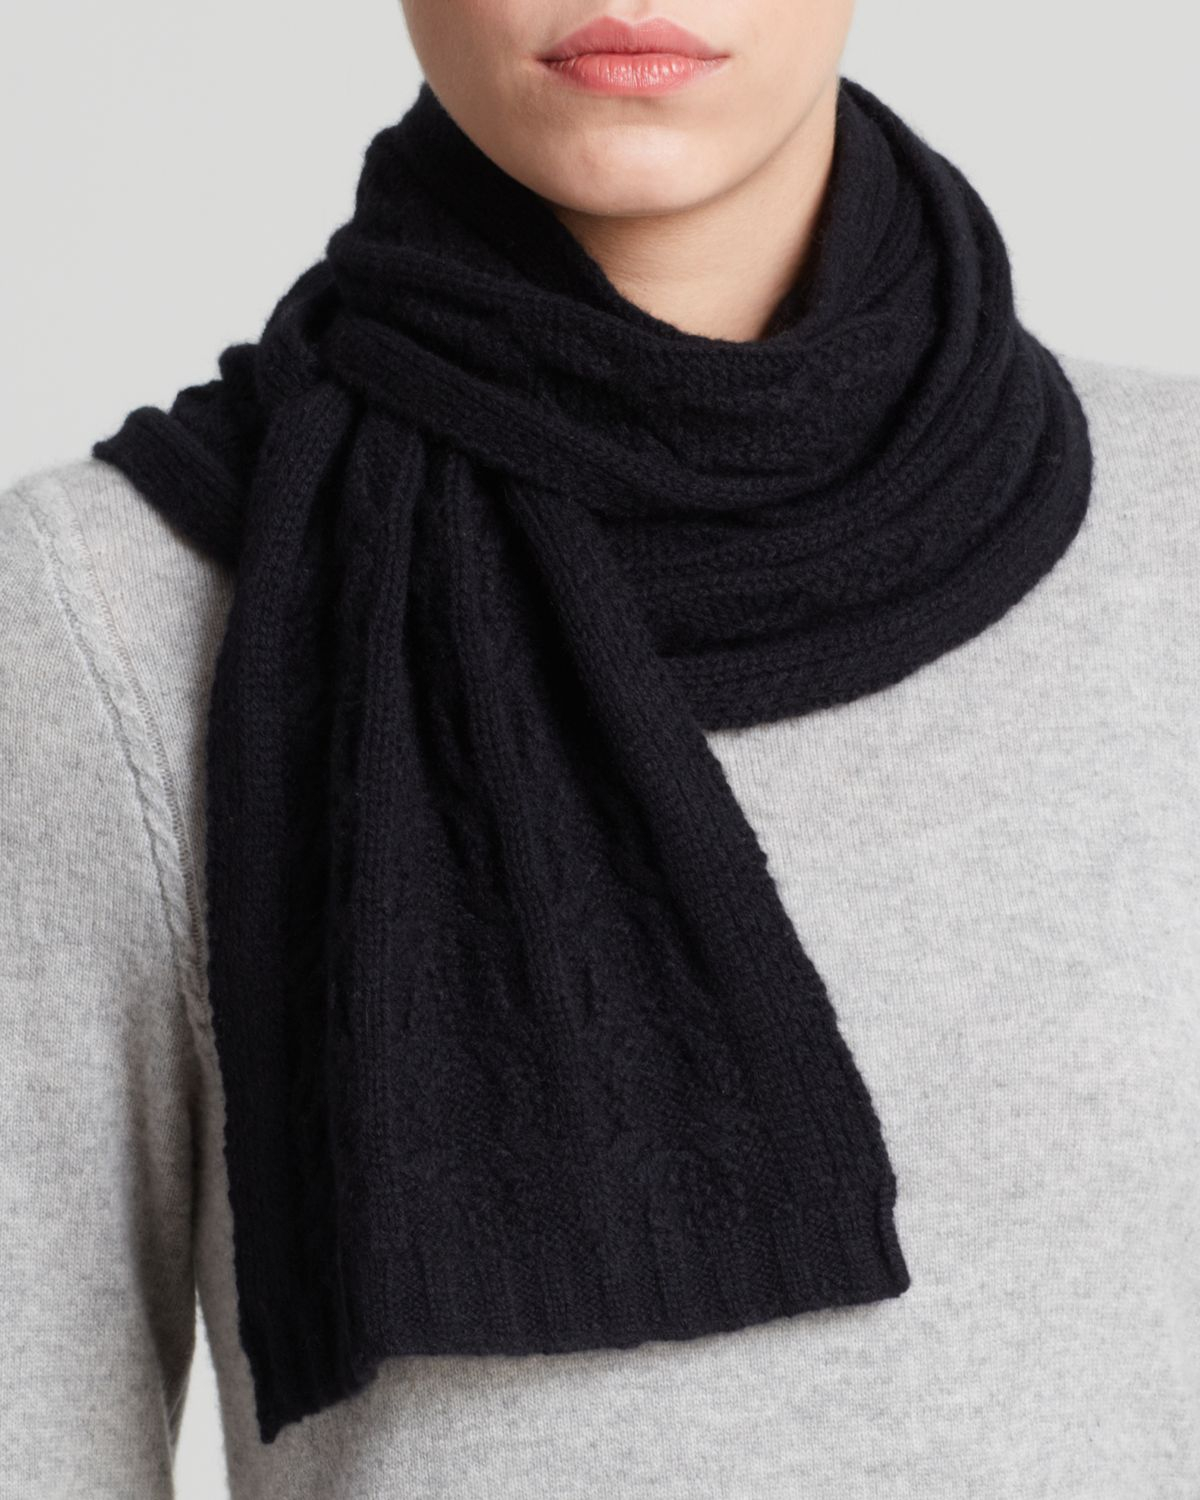 C by bloomingdales Cashmere Cable Knit Scarf in Black Lyst